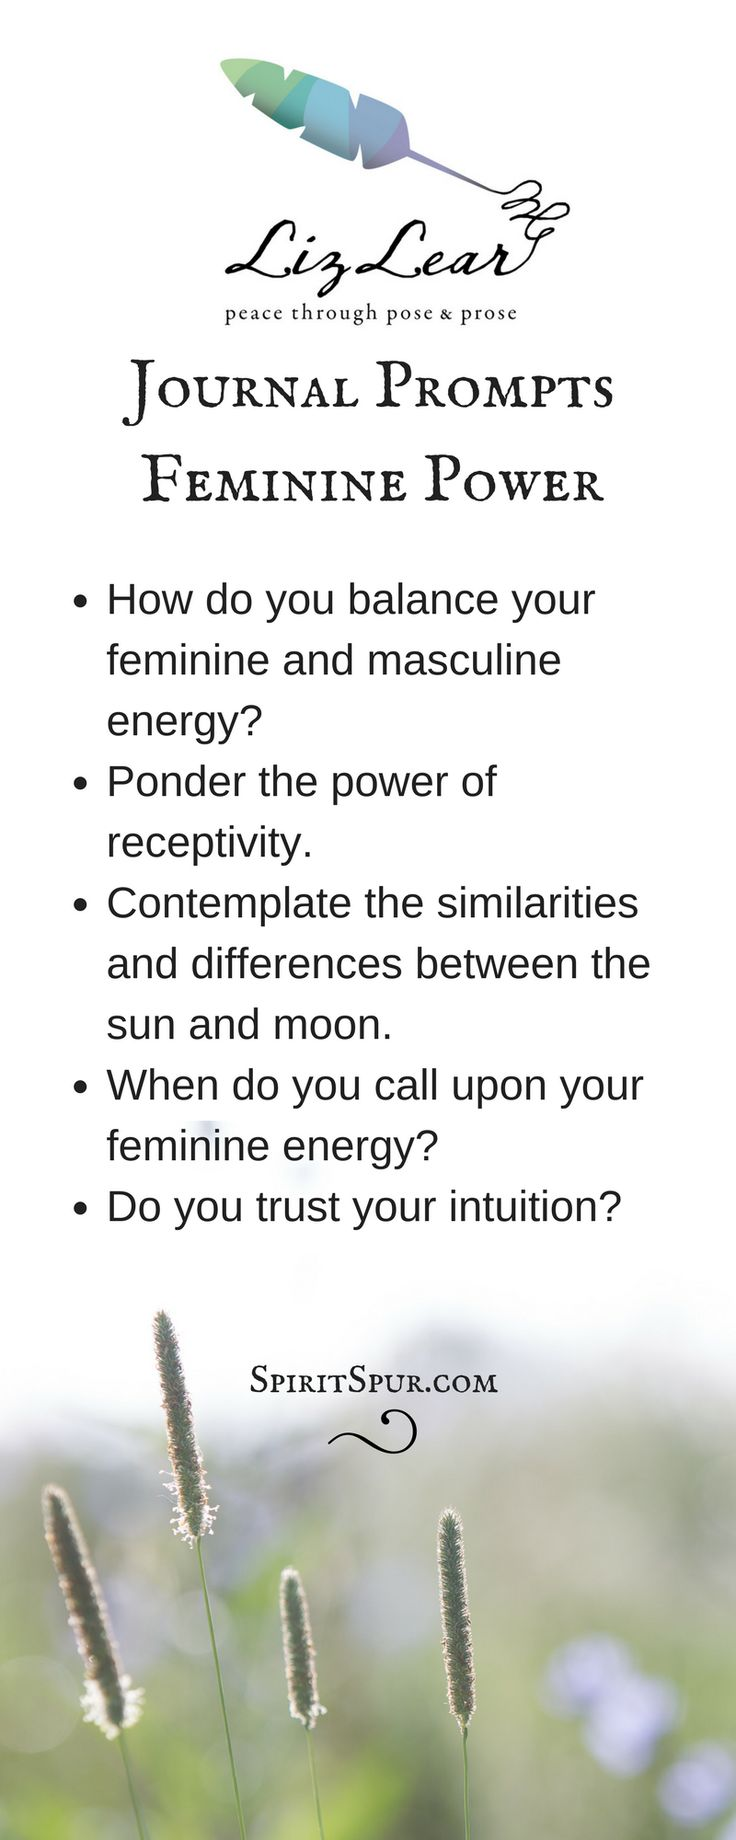 Yoga journal writing prompts from Liz Lear explore feminine power | free Cultivate Contentment guide with 20 yoga-inspired journal writing prompts | stress relief | yin yoga | divine feminine | girl power | moon yoga